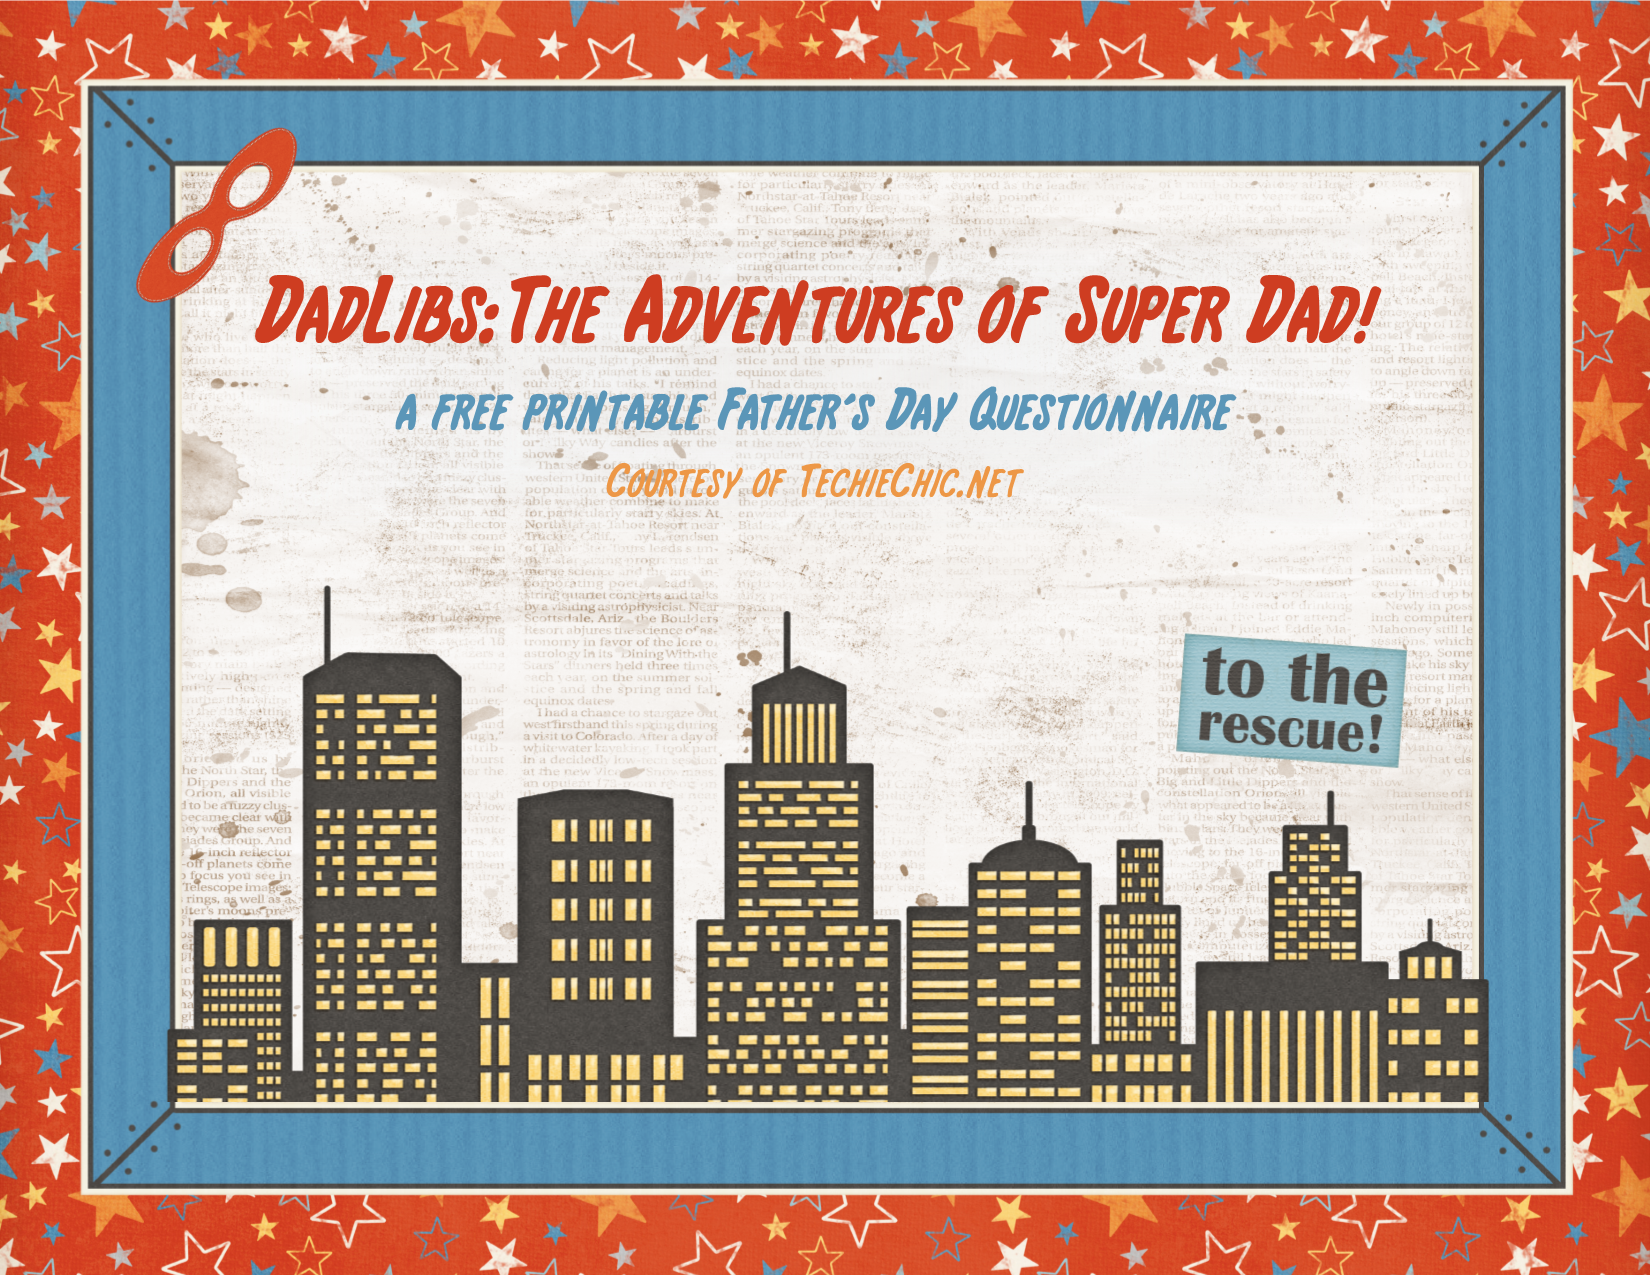 DadLibs: A free printable father's day questionnaire/story